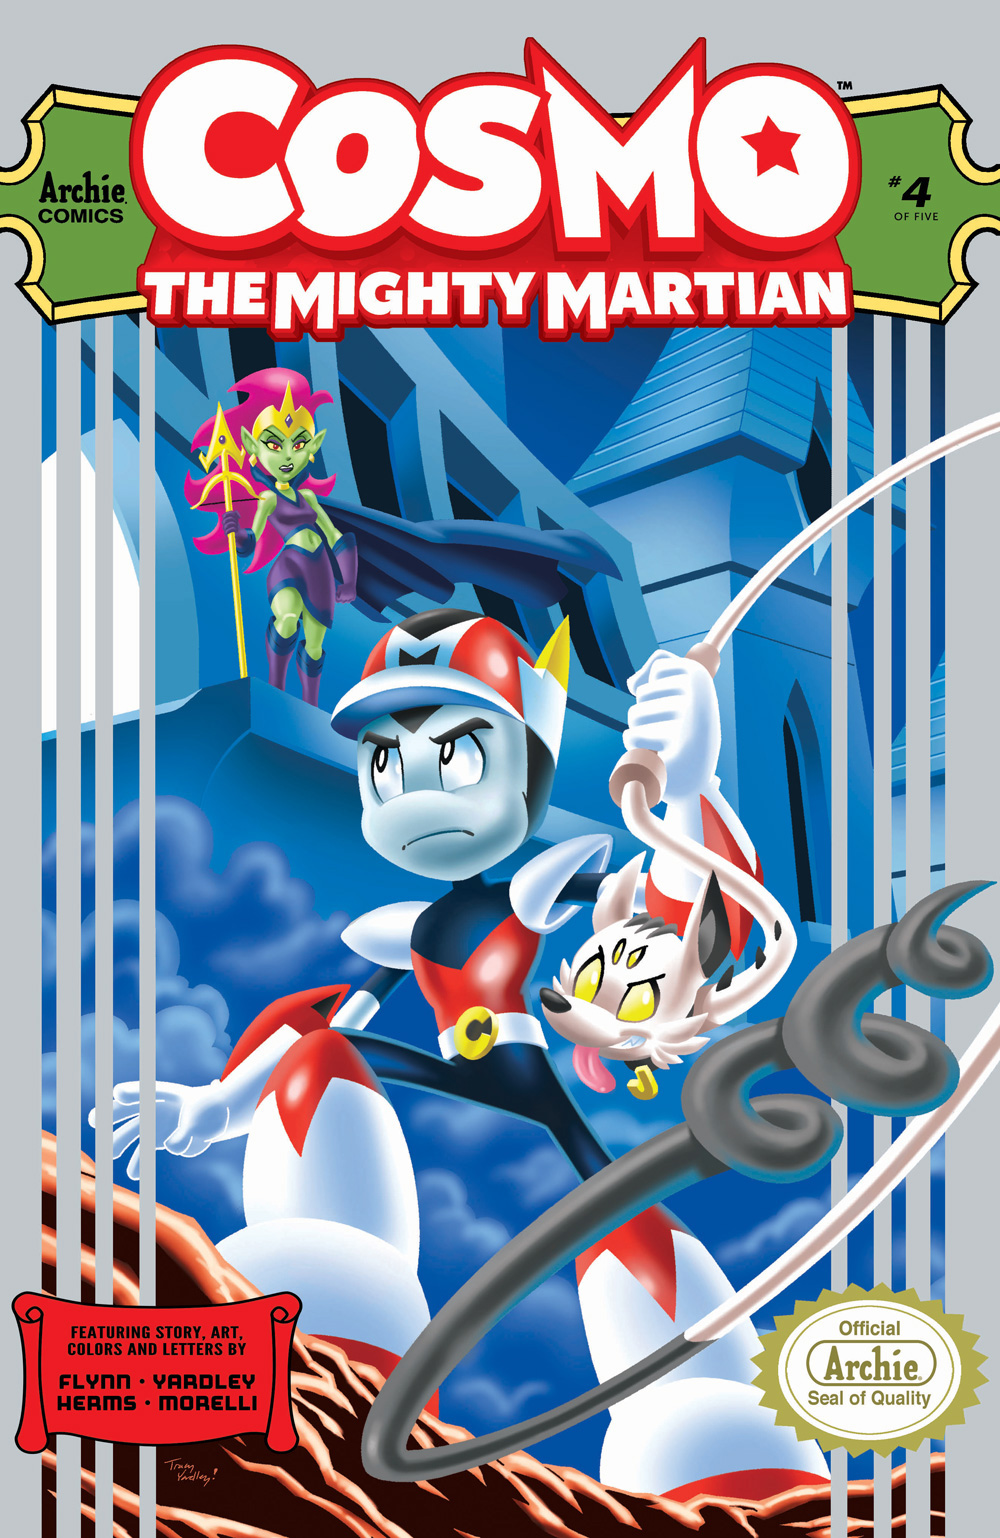 COSMO THE MIGHTY MARTIAN #4: Cover A Yardley